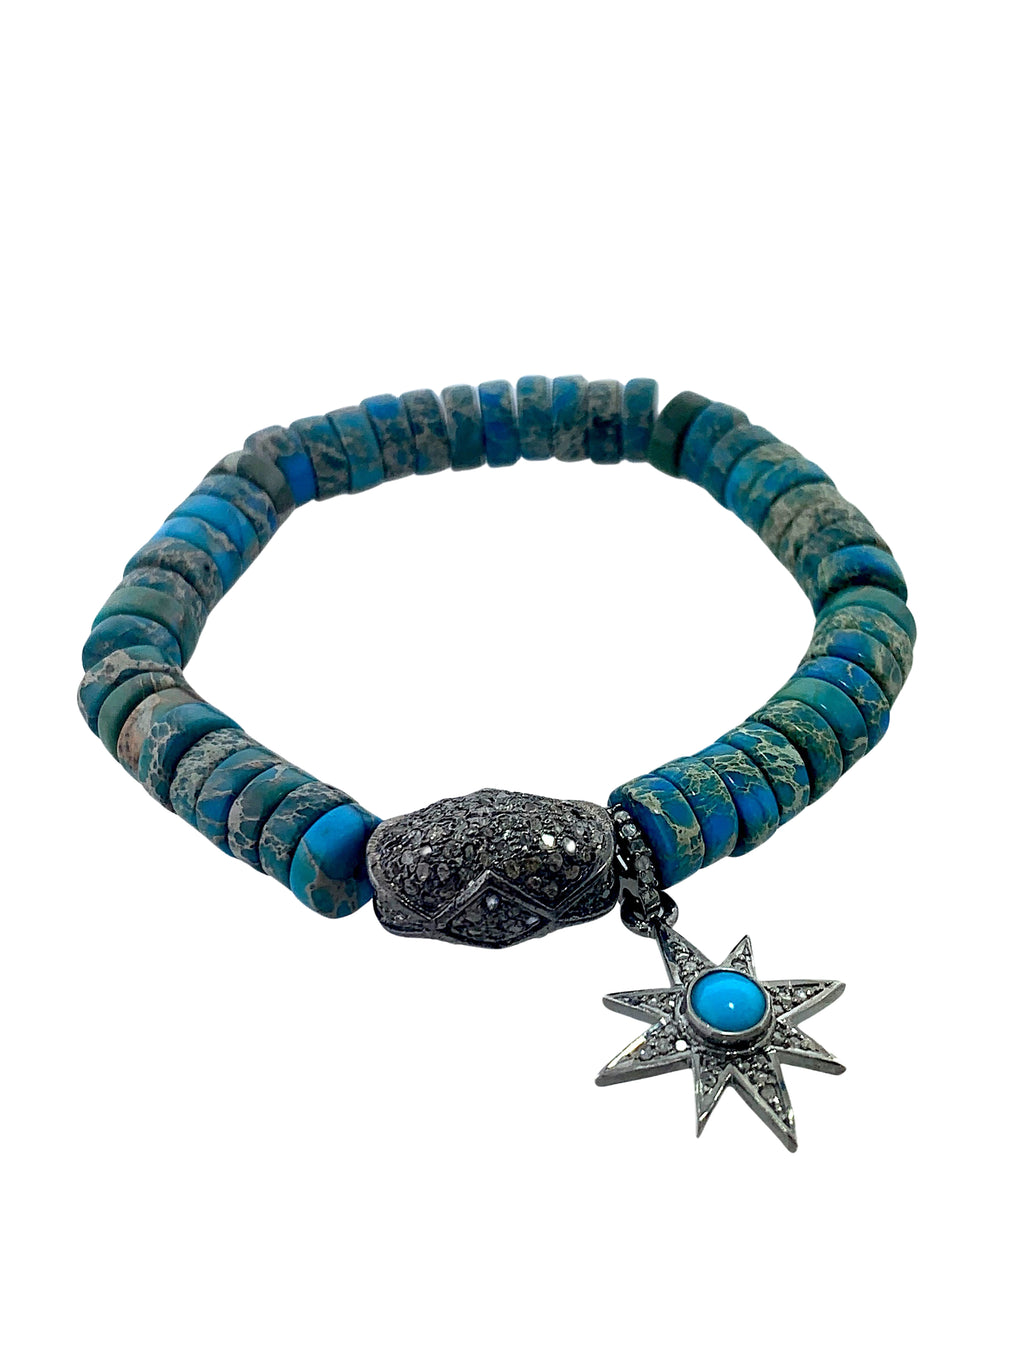 Sterling Silver Pave Diamond Bead and Turquiose Star on Turquoise Beads